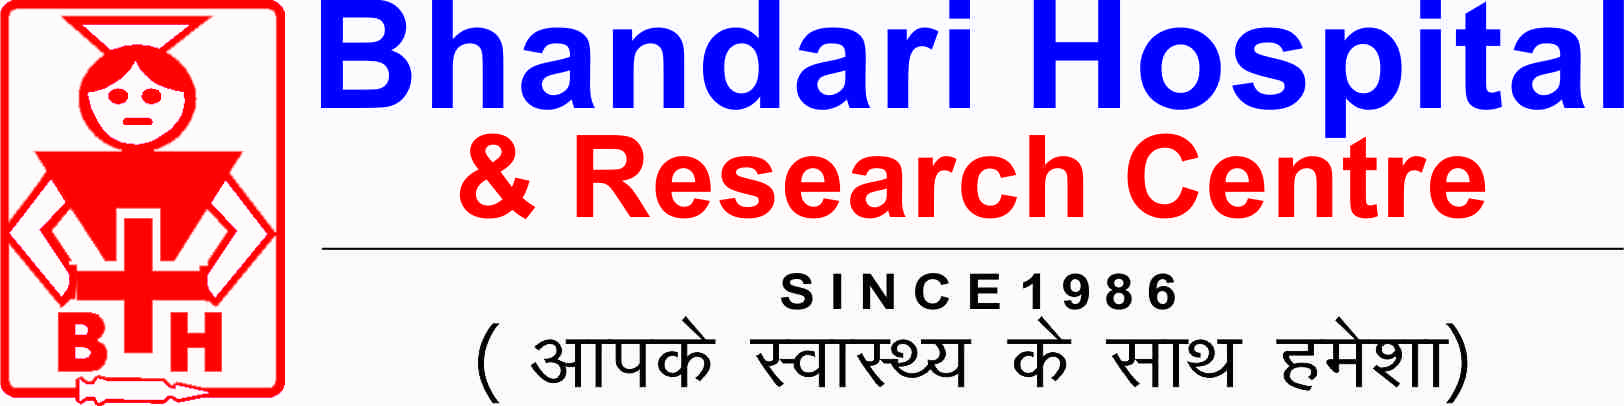 Bhadari Hospital & research center logo